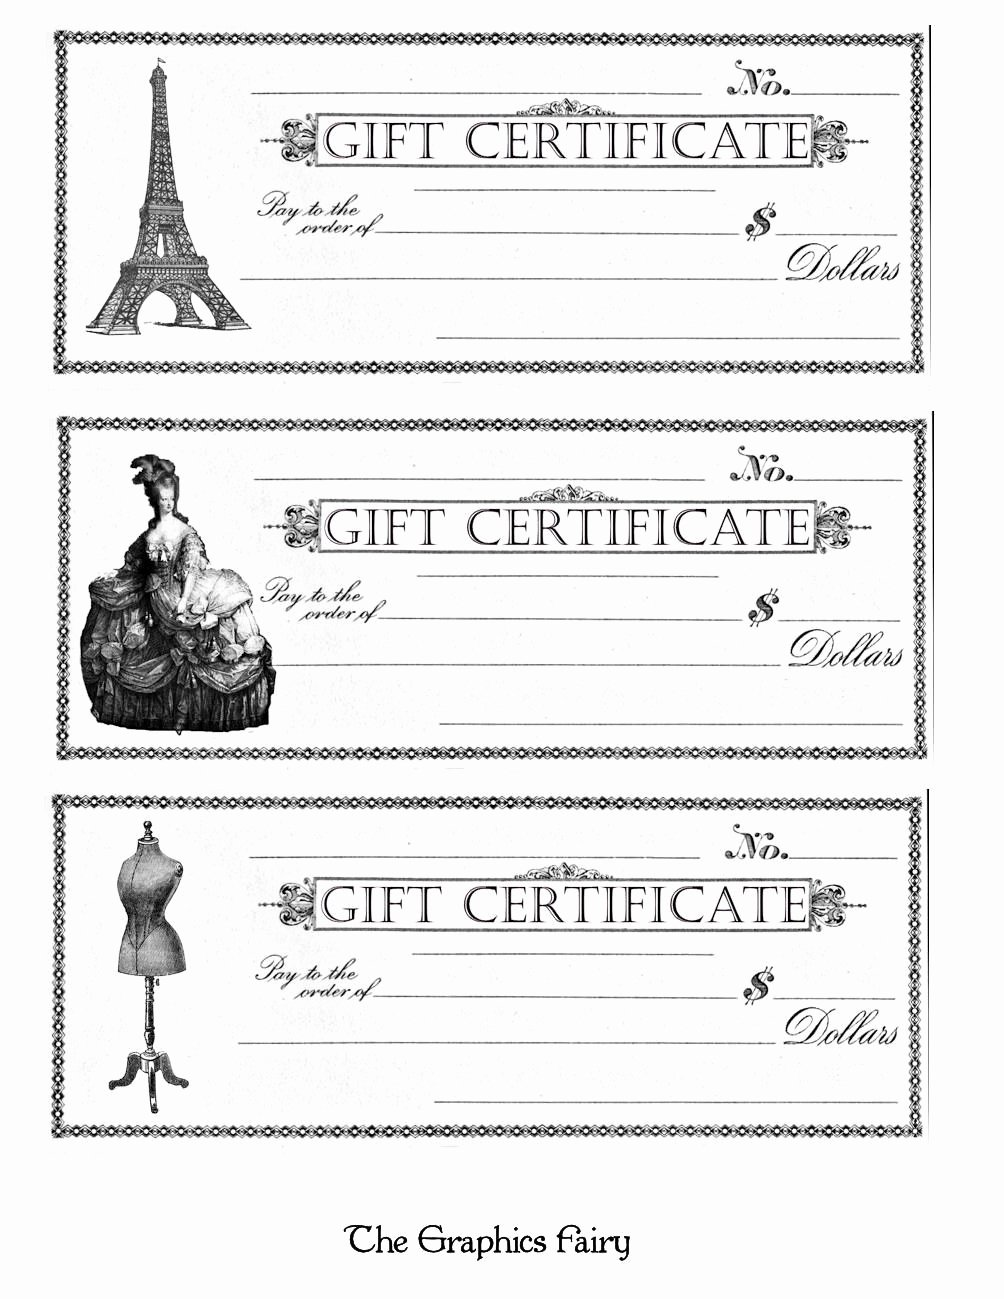 Gift Certificate Template Pages Fresh Free Printable Gift Certificates the Graphics Fairy